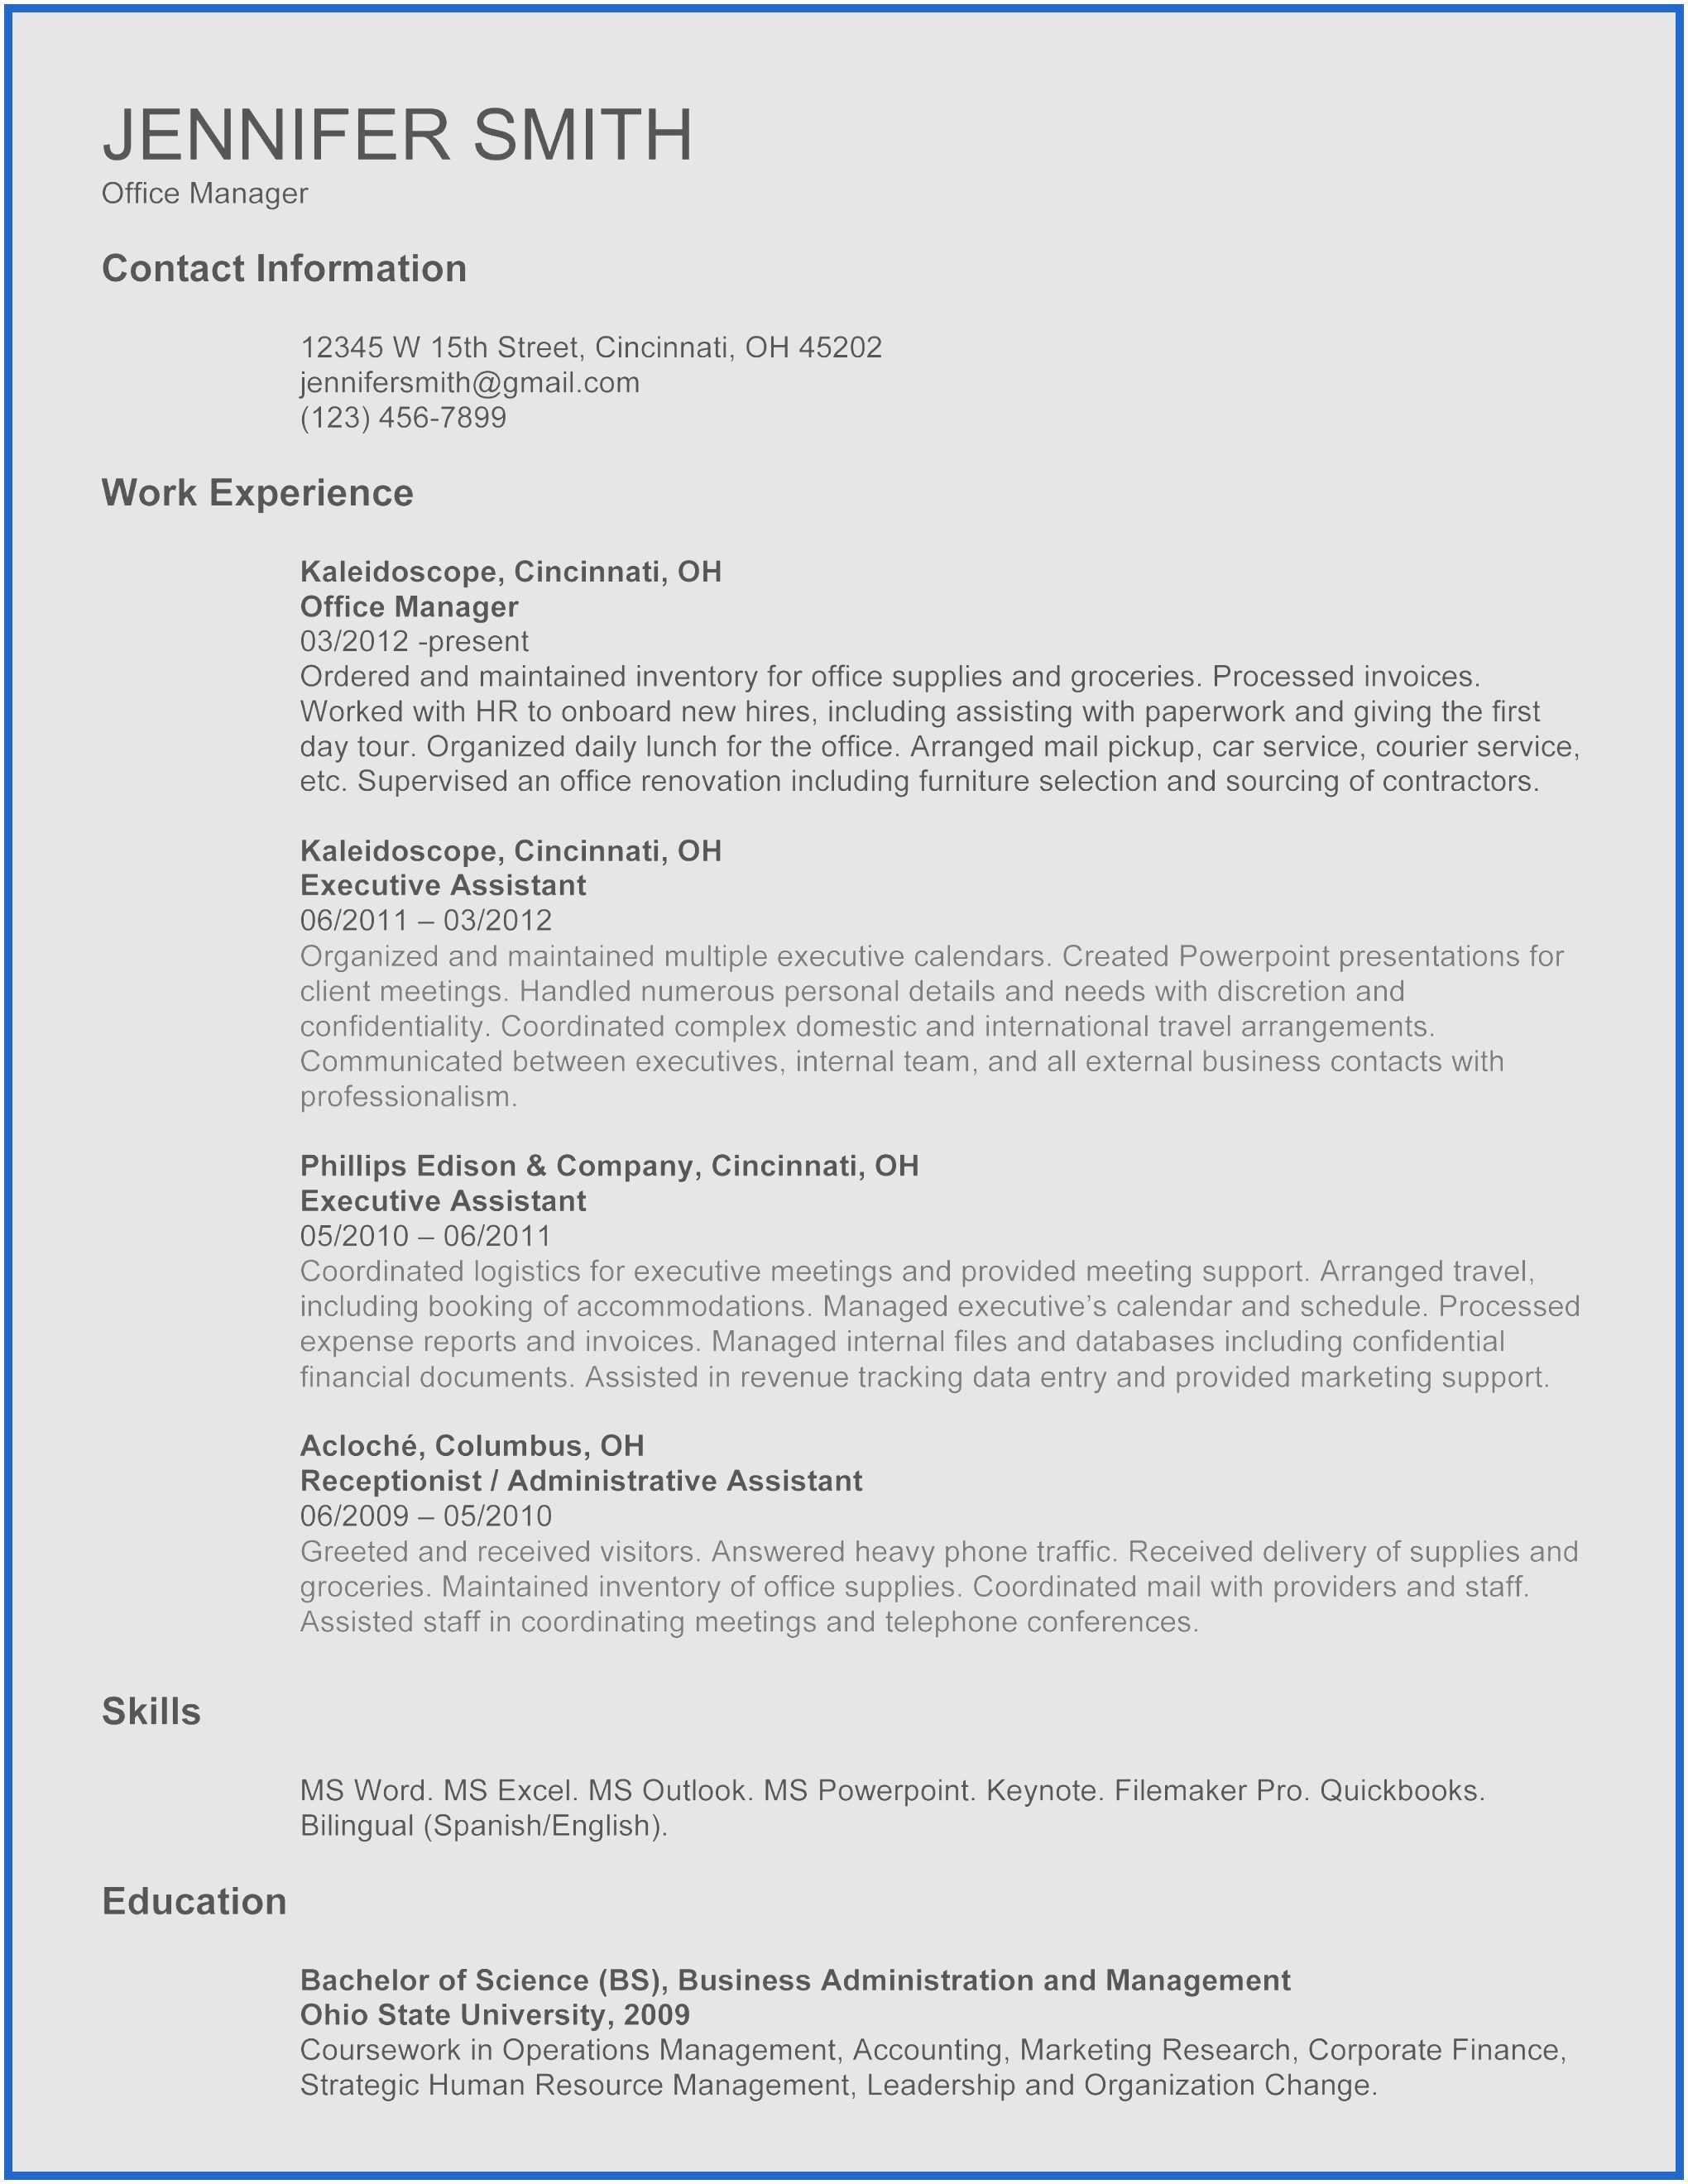 finance resume template word example-Cv Resume Templates Word Fresh Resume Samples Word New American Resume Sample New Student Resume 0d 3-b